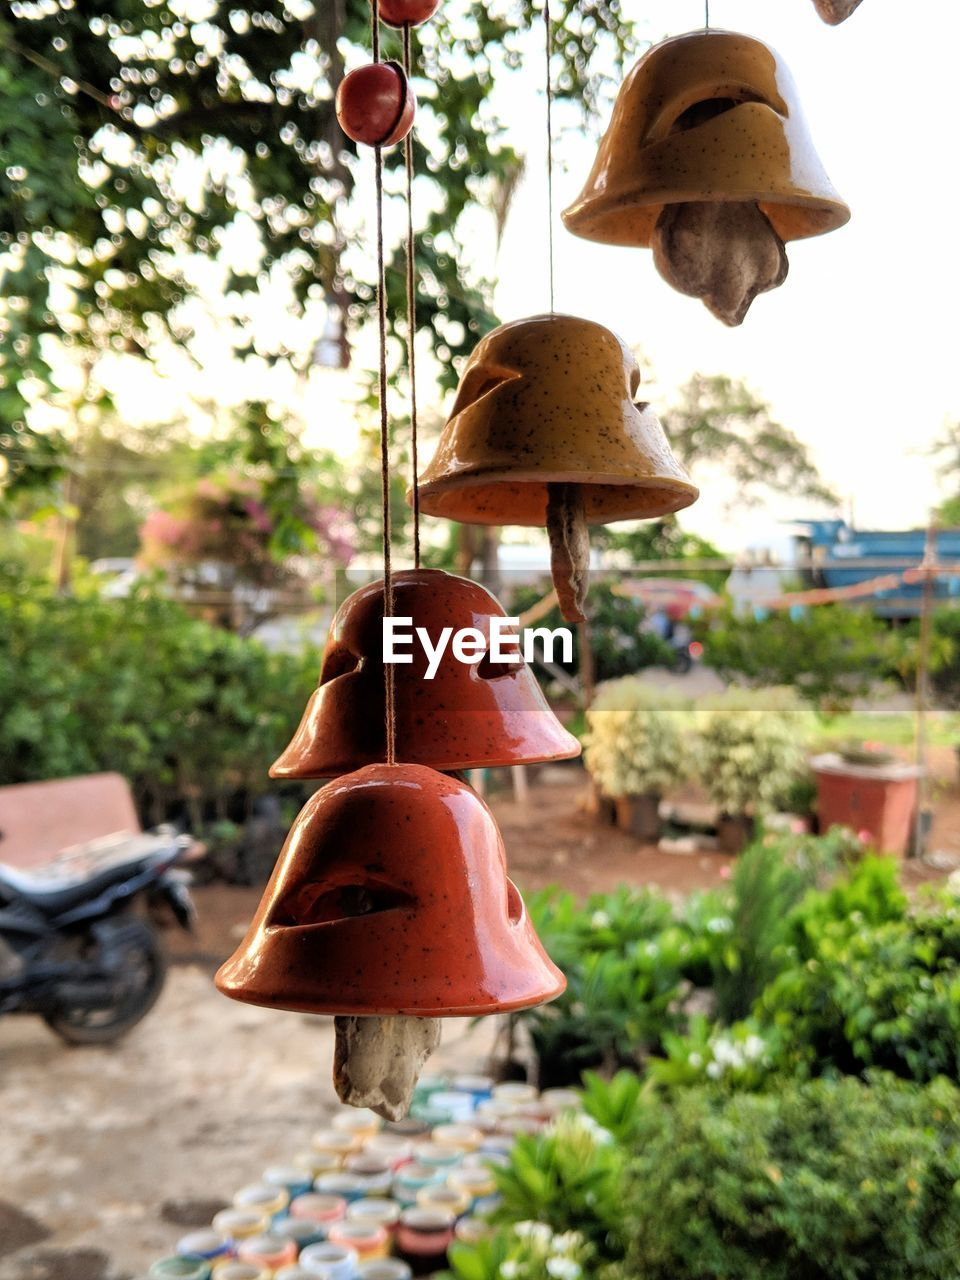 focus on foreground, hanging, no people, plant, nature, day, close-up, outdoors, tree, bell, lighting equipment, growth, hat, metal, sunlight, still life, creativity, fungus, food, art and craft, electric lamp